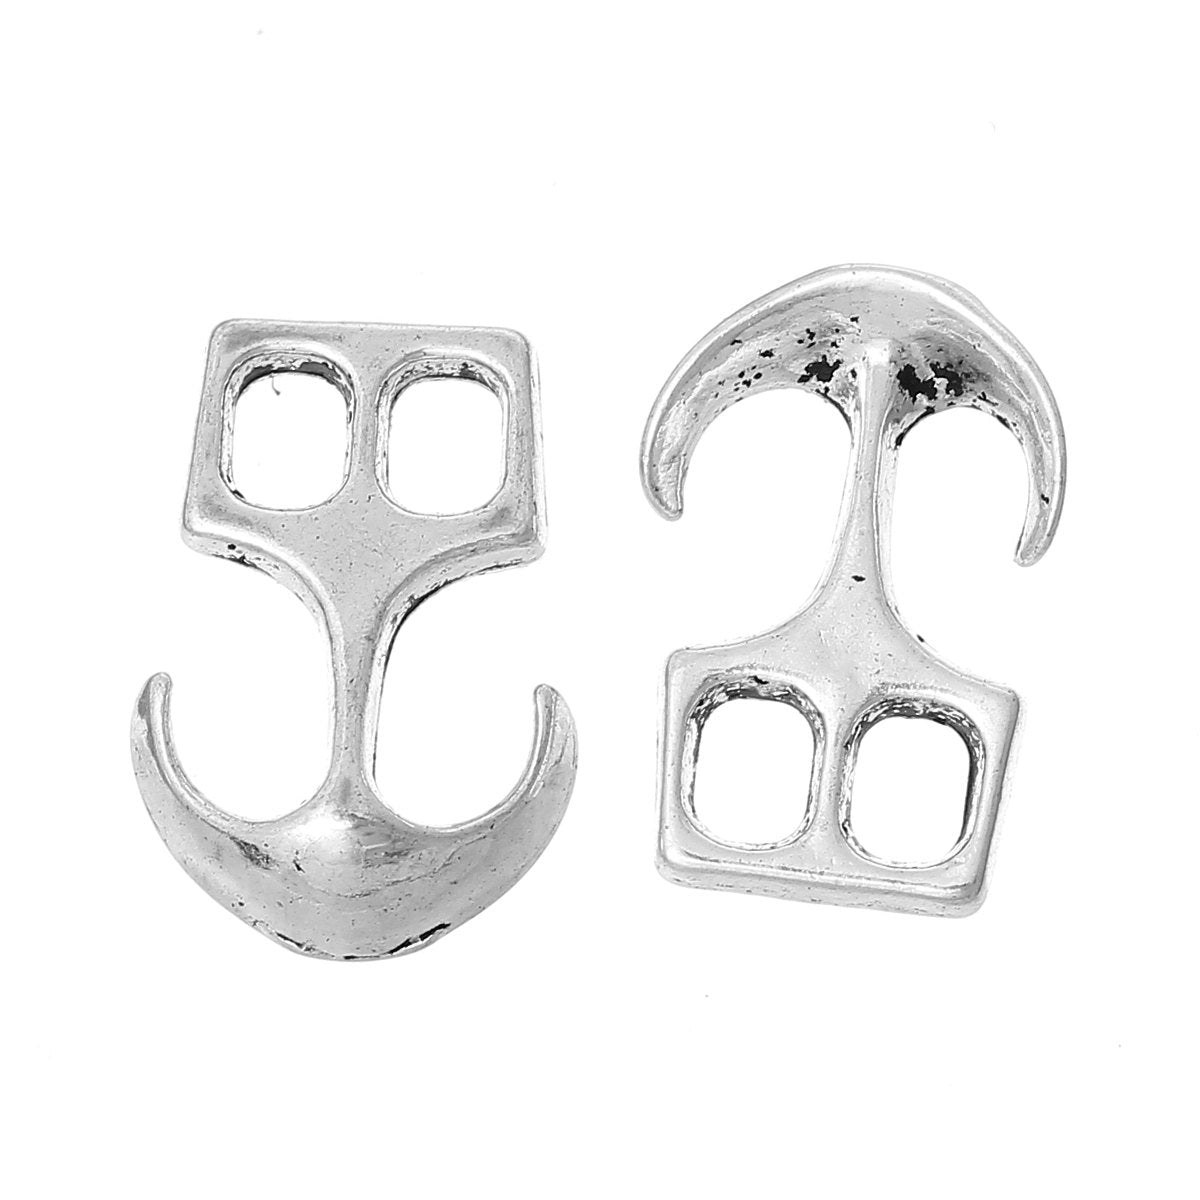 "Anchor Clasp Connector - Silver - 23mm x 16mm (7/8"" x  5/8"") - Silver Anchor Clasp for Leather Bracelet - Clasps for Leather Finding (34508)"